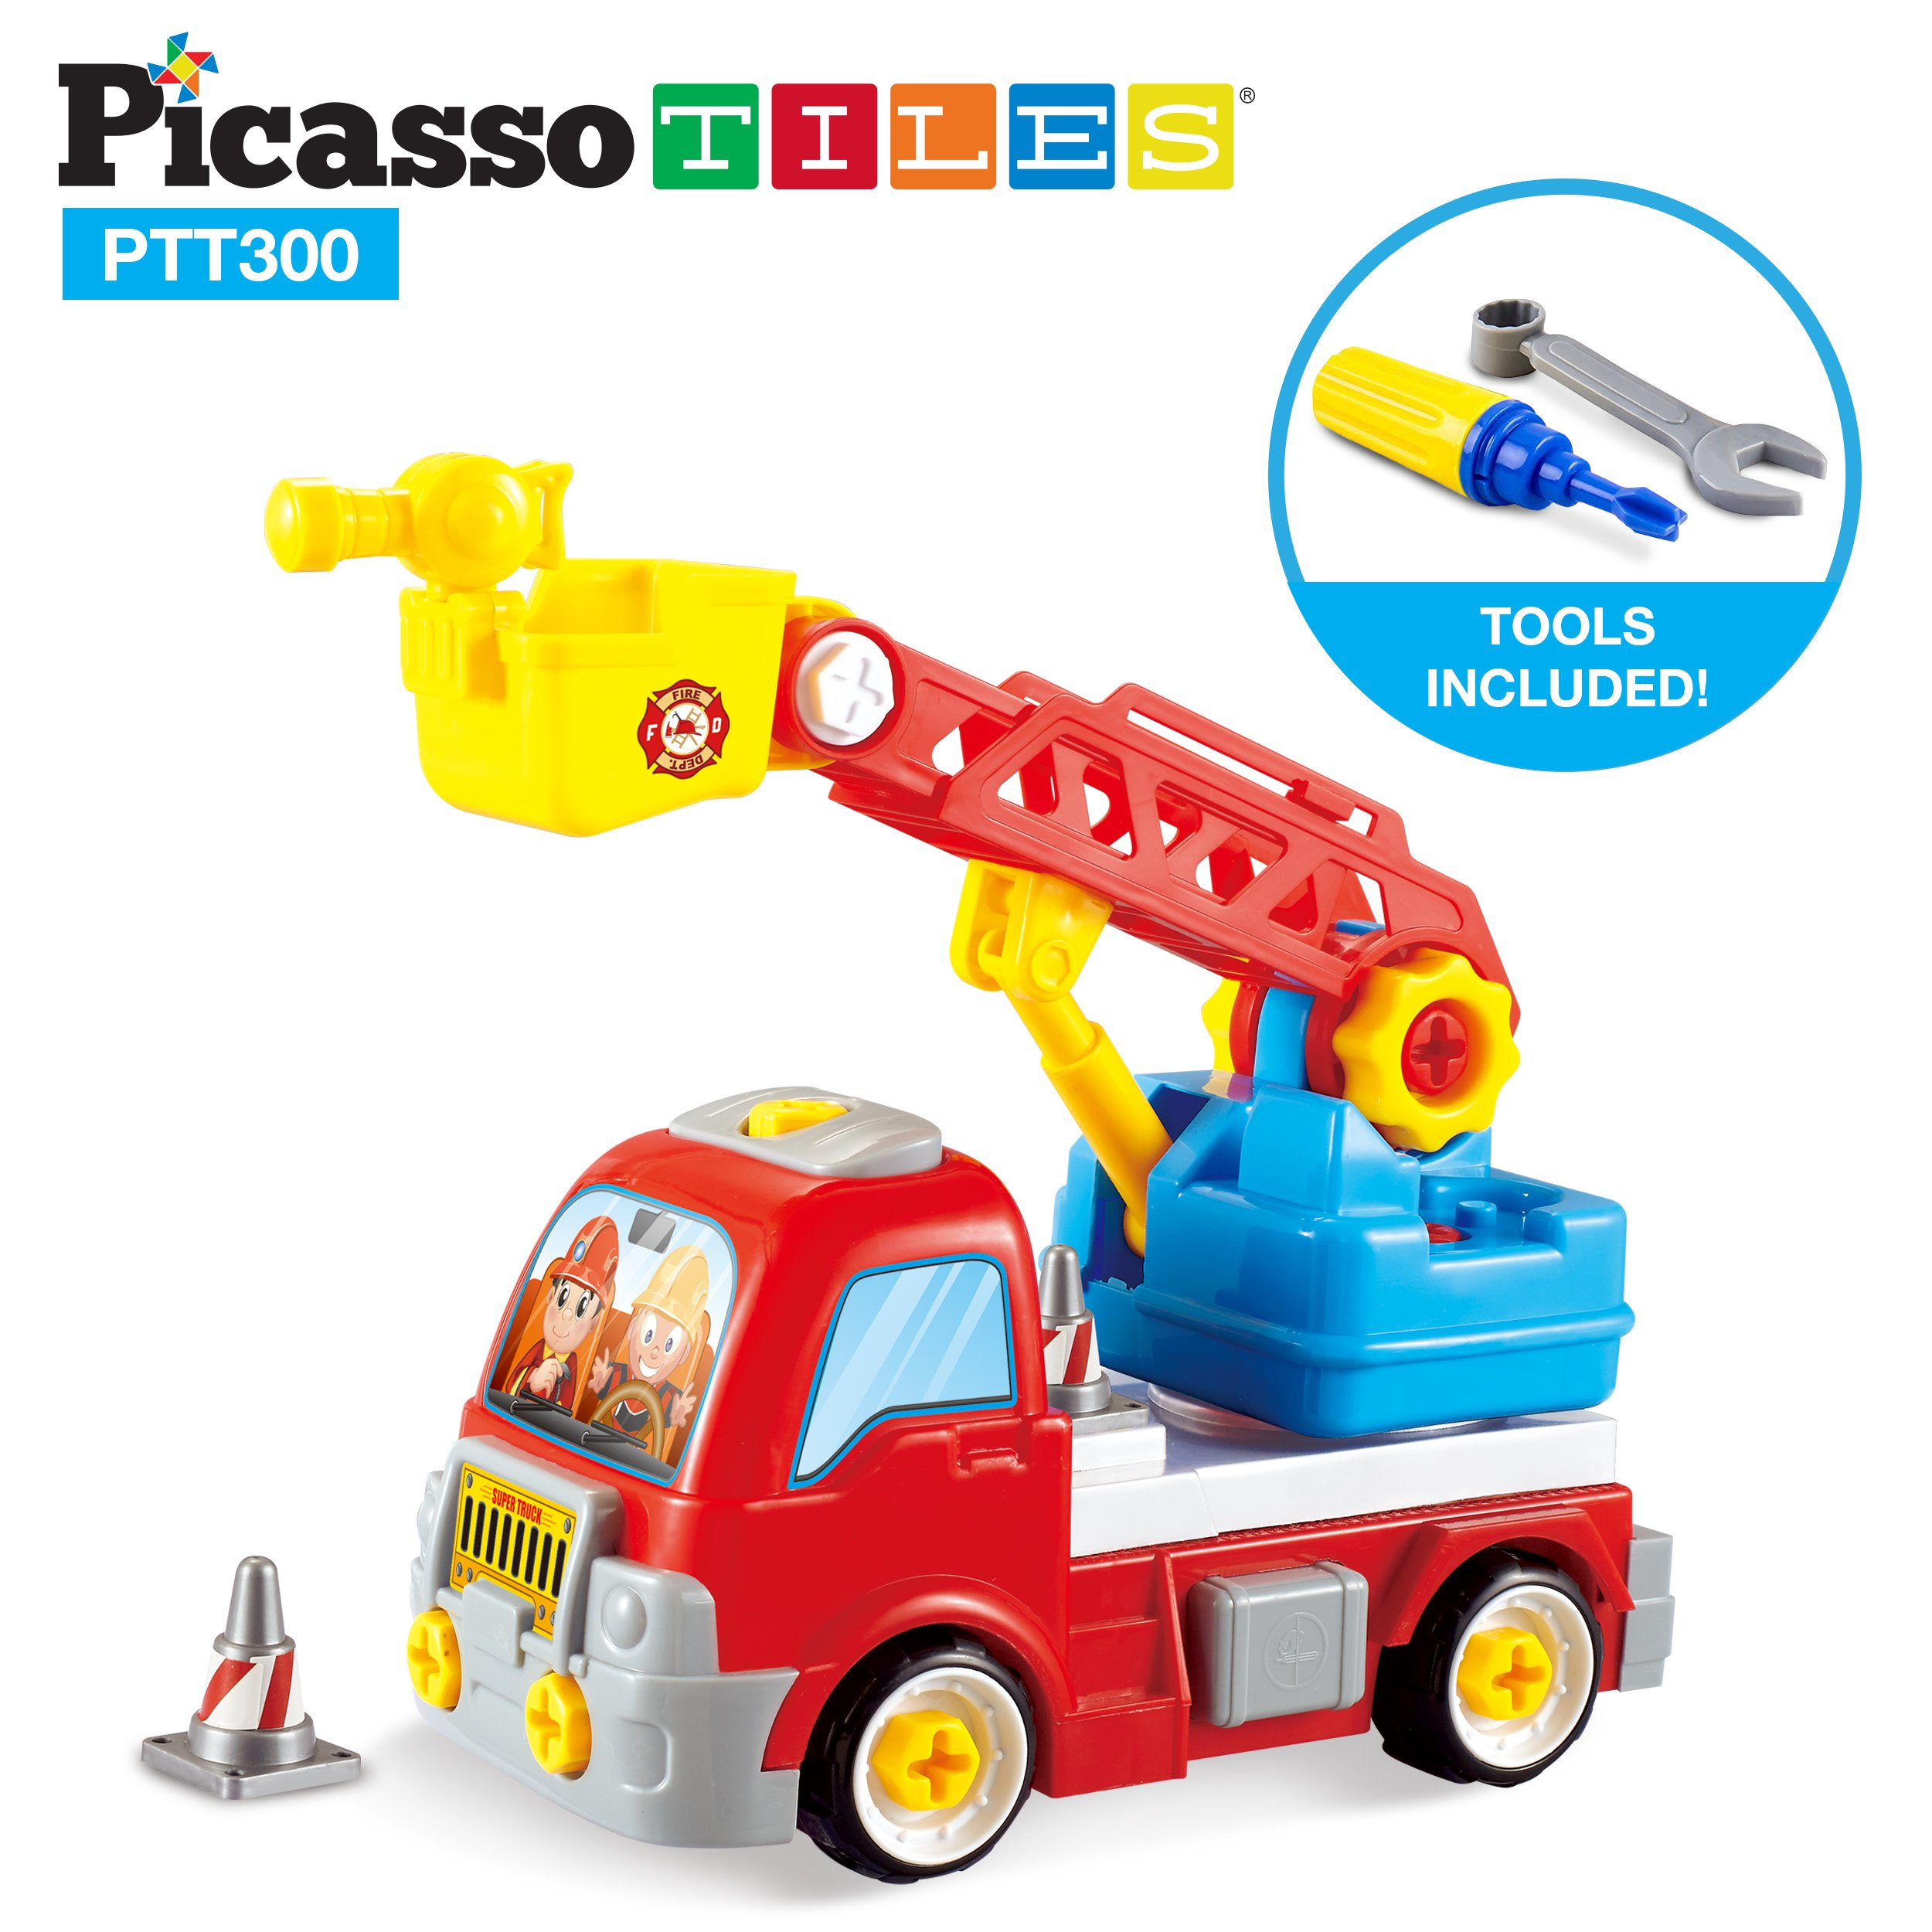 PicassoTiles DIY Construction Fire Truck Toy Car Set Dismantling Take-A-Part Toys Building Kit w/ Extendable 360 Rotating Ladder Safe Child-Size Large Parts, Reversible Screw Driver Nuts Bolts PTT300